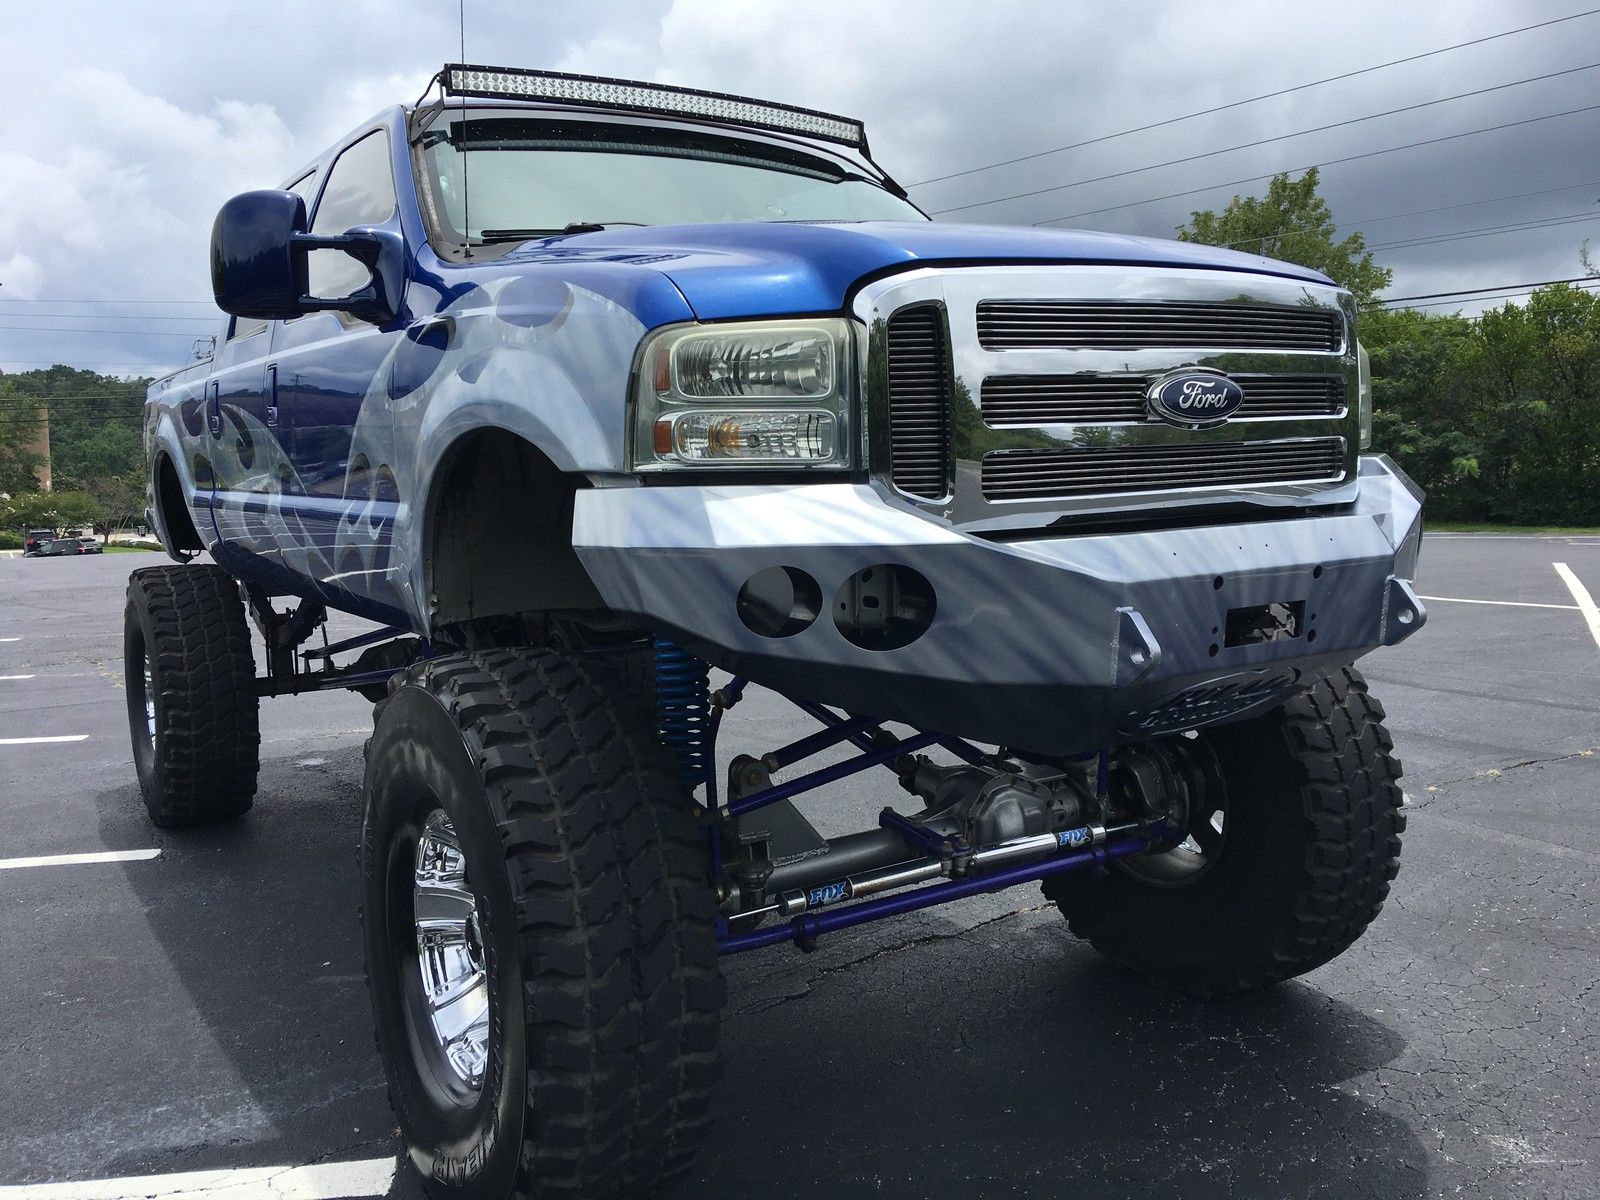 Custom Built Ford F Lariat Monster For Sale on Ford F 250 Super Duty Lariat